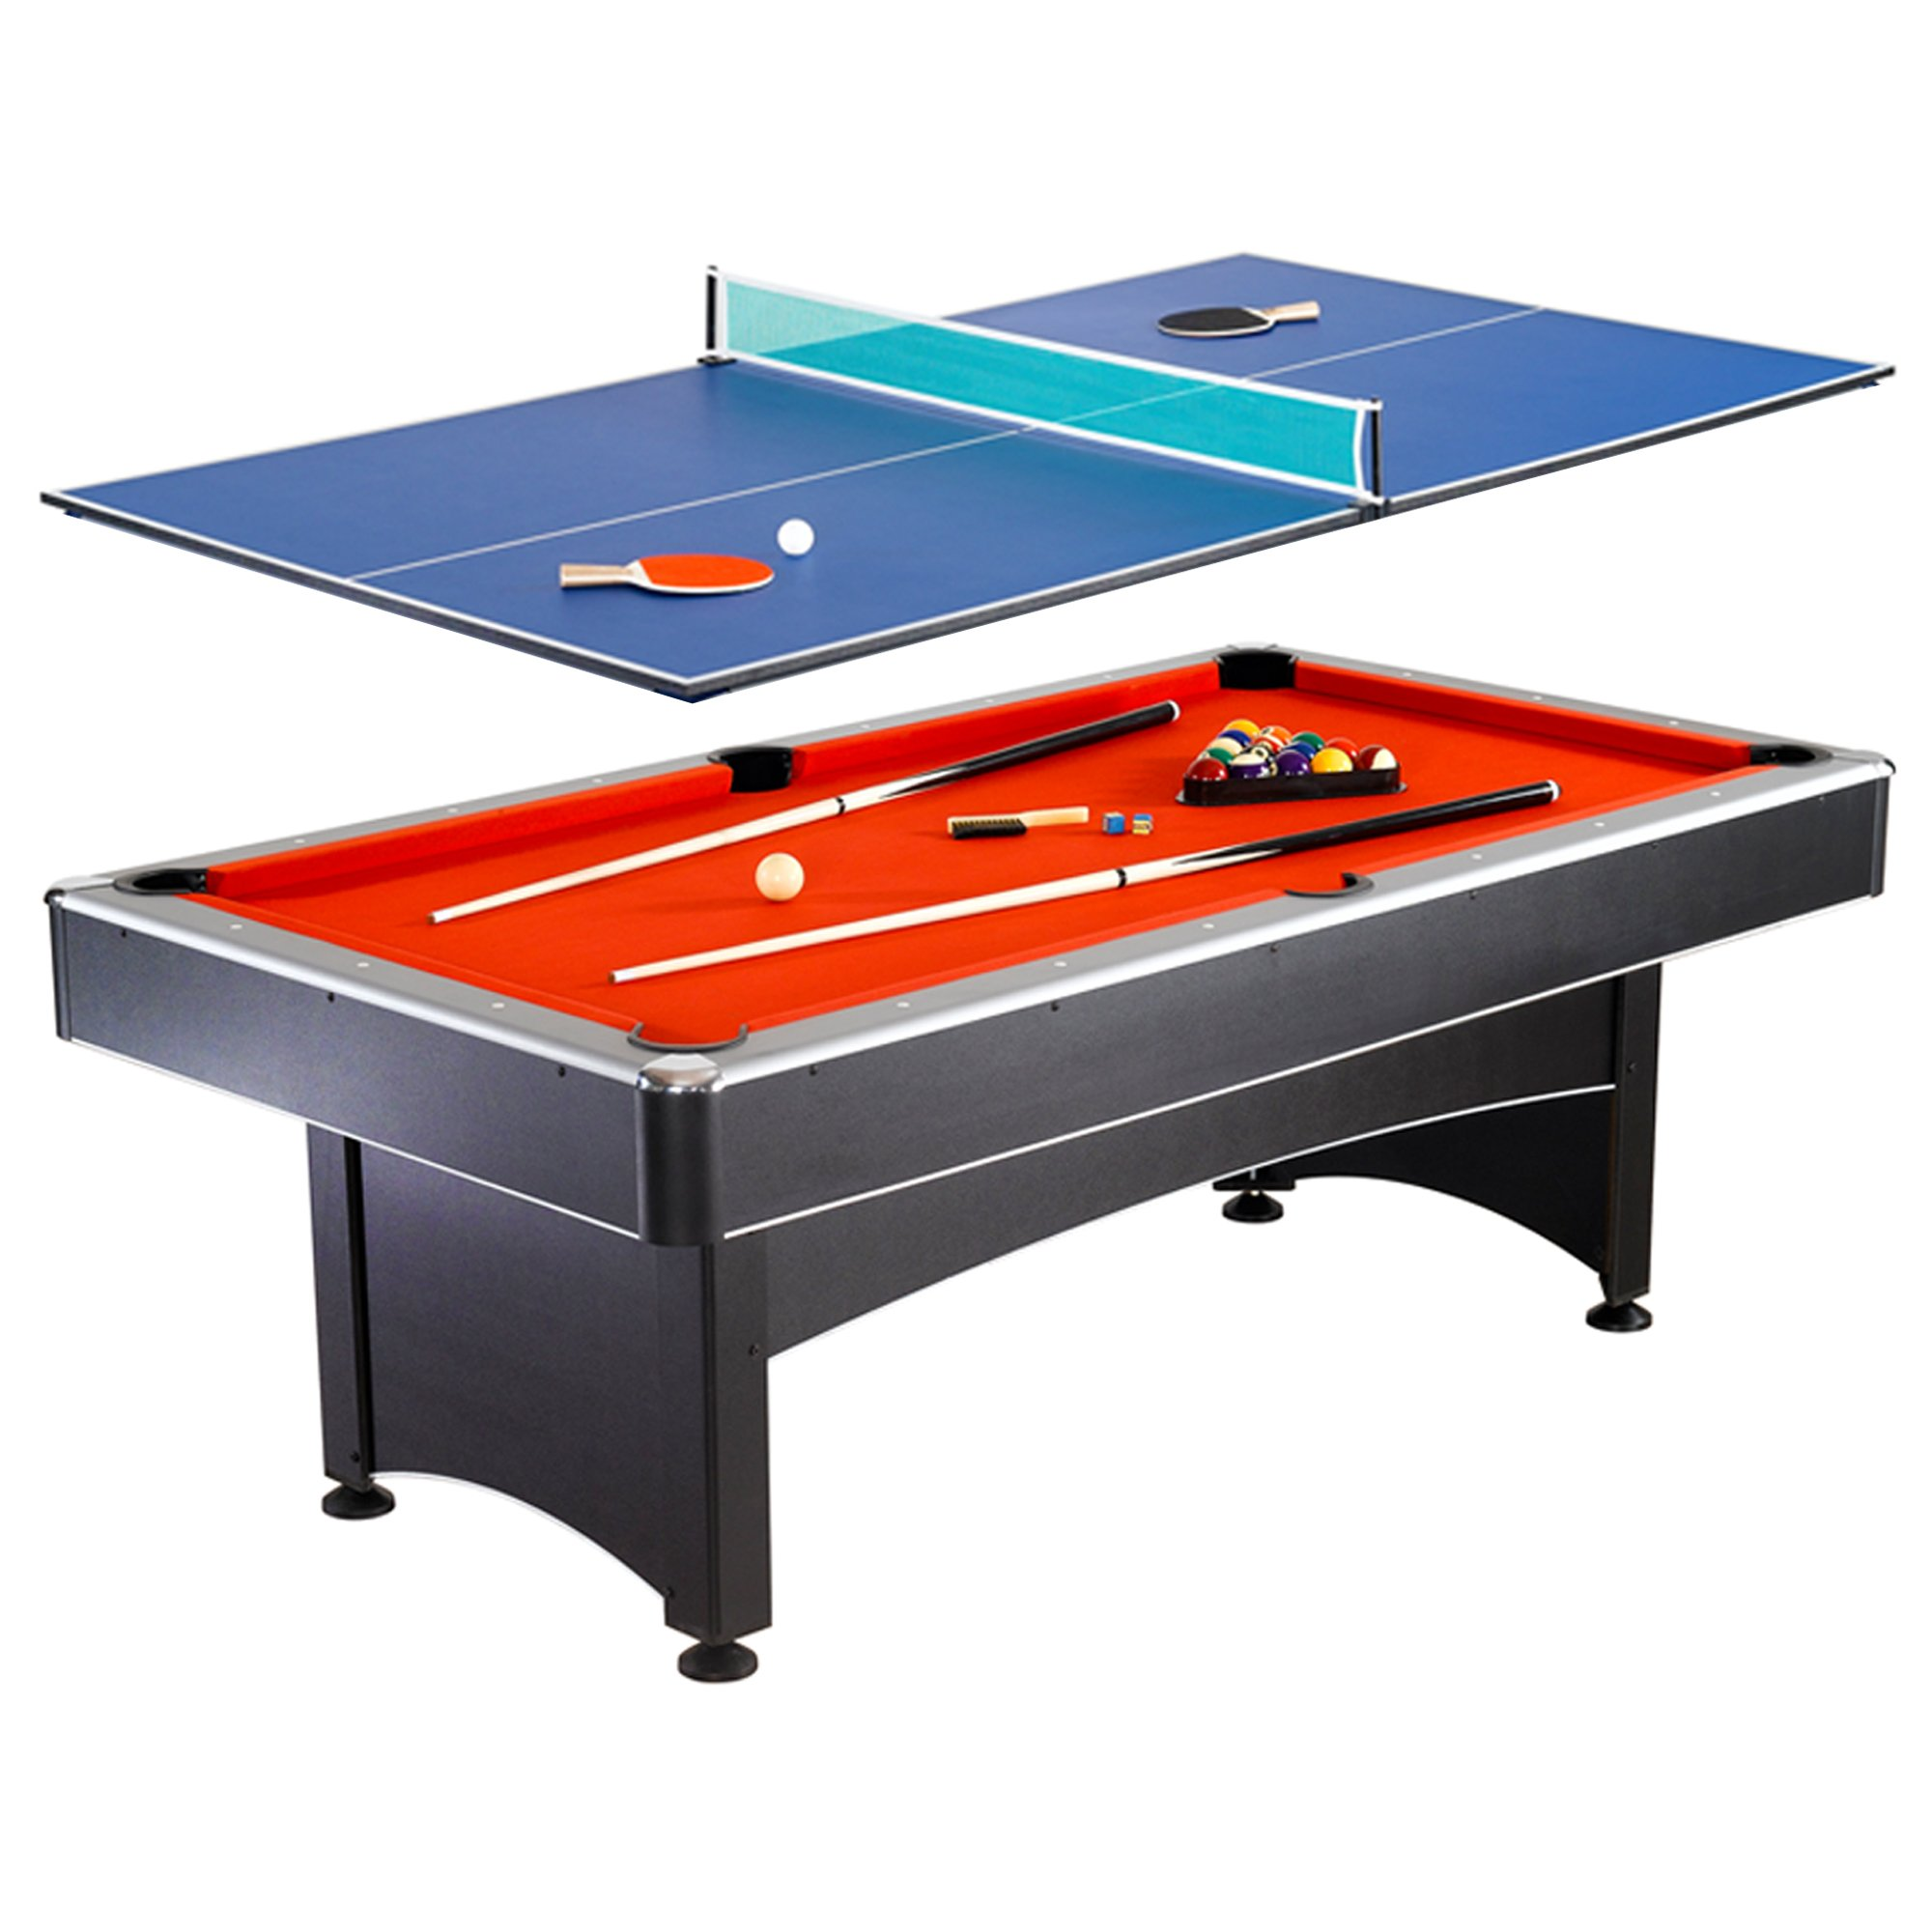 Hathaway Maverick 7-foot Pool and Table Tennis Multi Game with Red Felt and Blue Table Tennis Surface. Includes Cues, Paddles and Balls by Hathaway